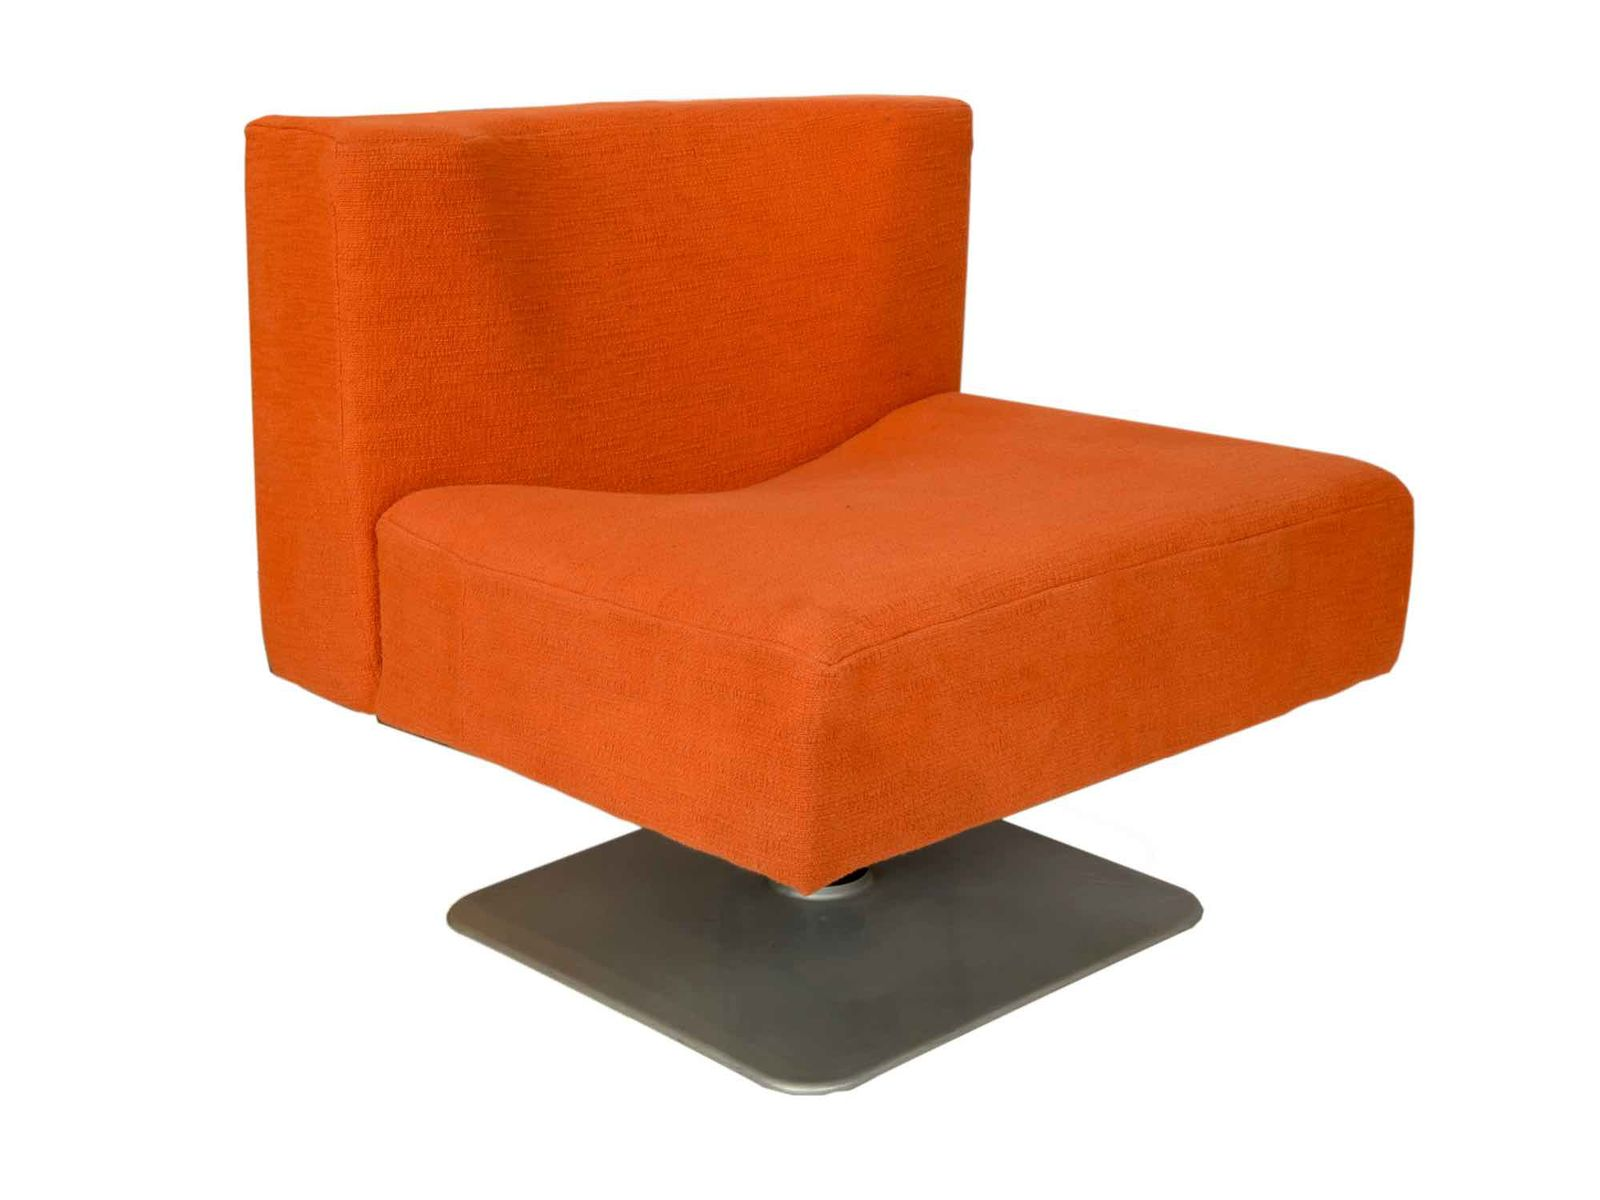 Modernist Orange Chairs by Knoll 1960s Set of 2 for sale at Pamono